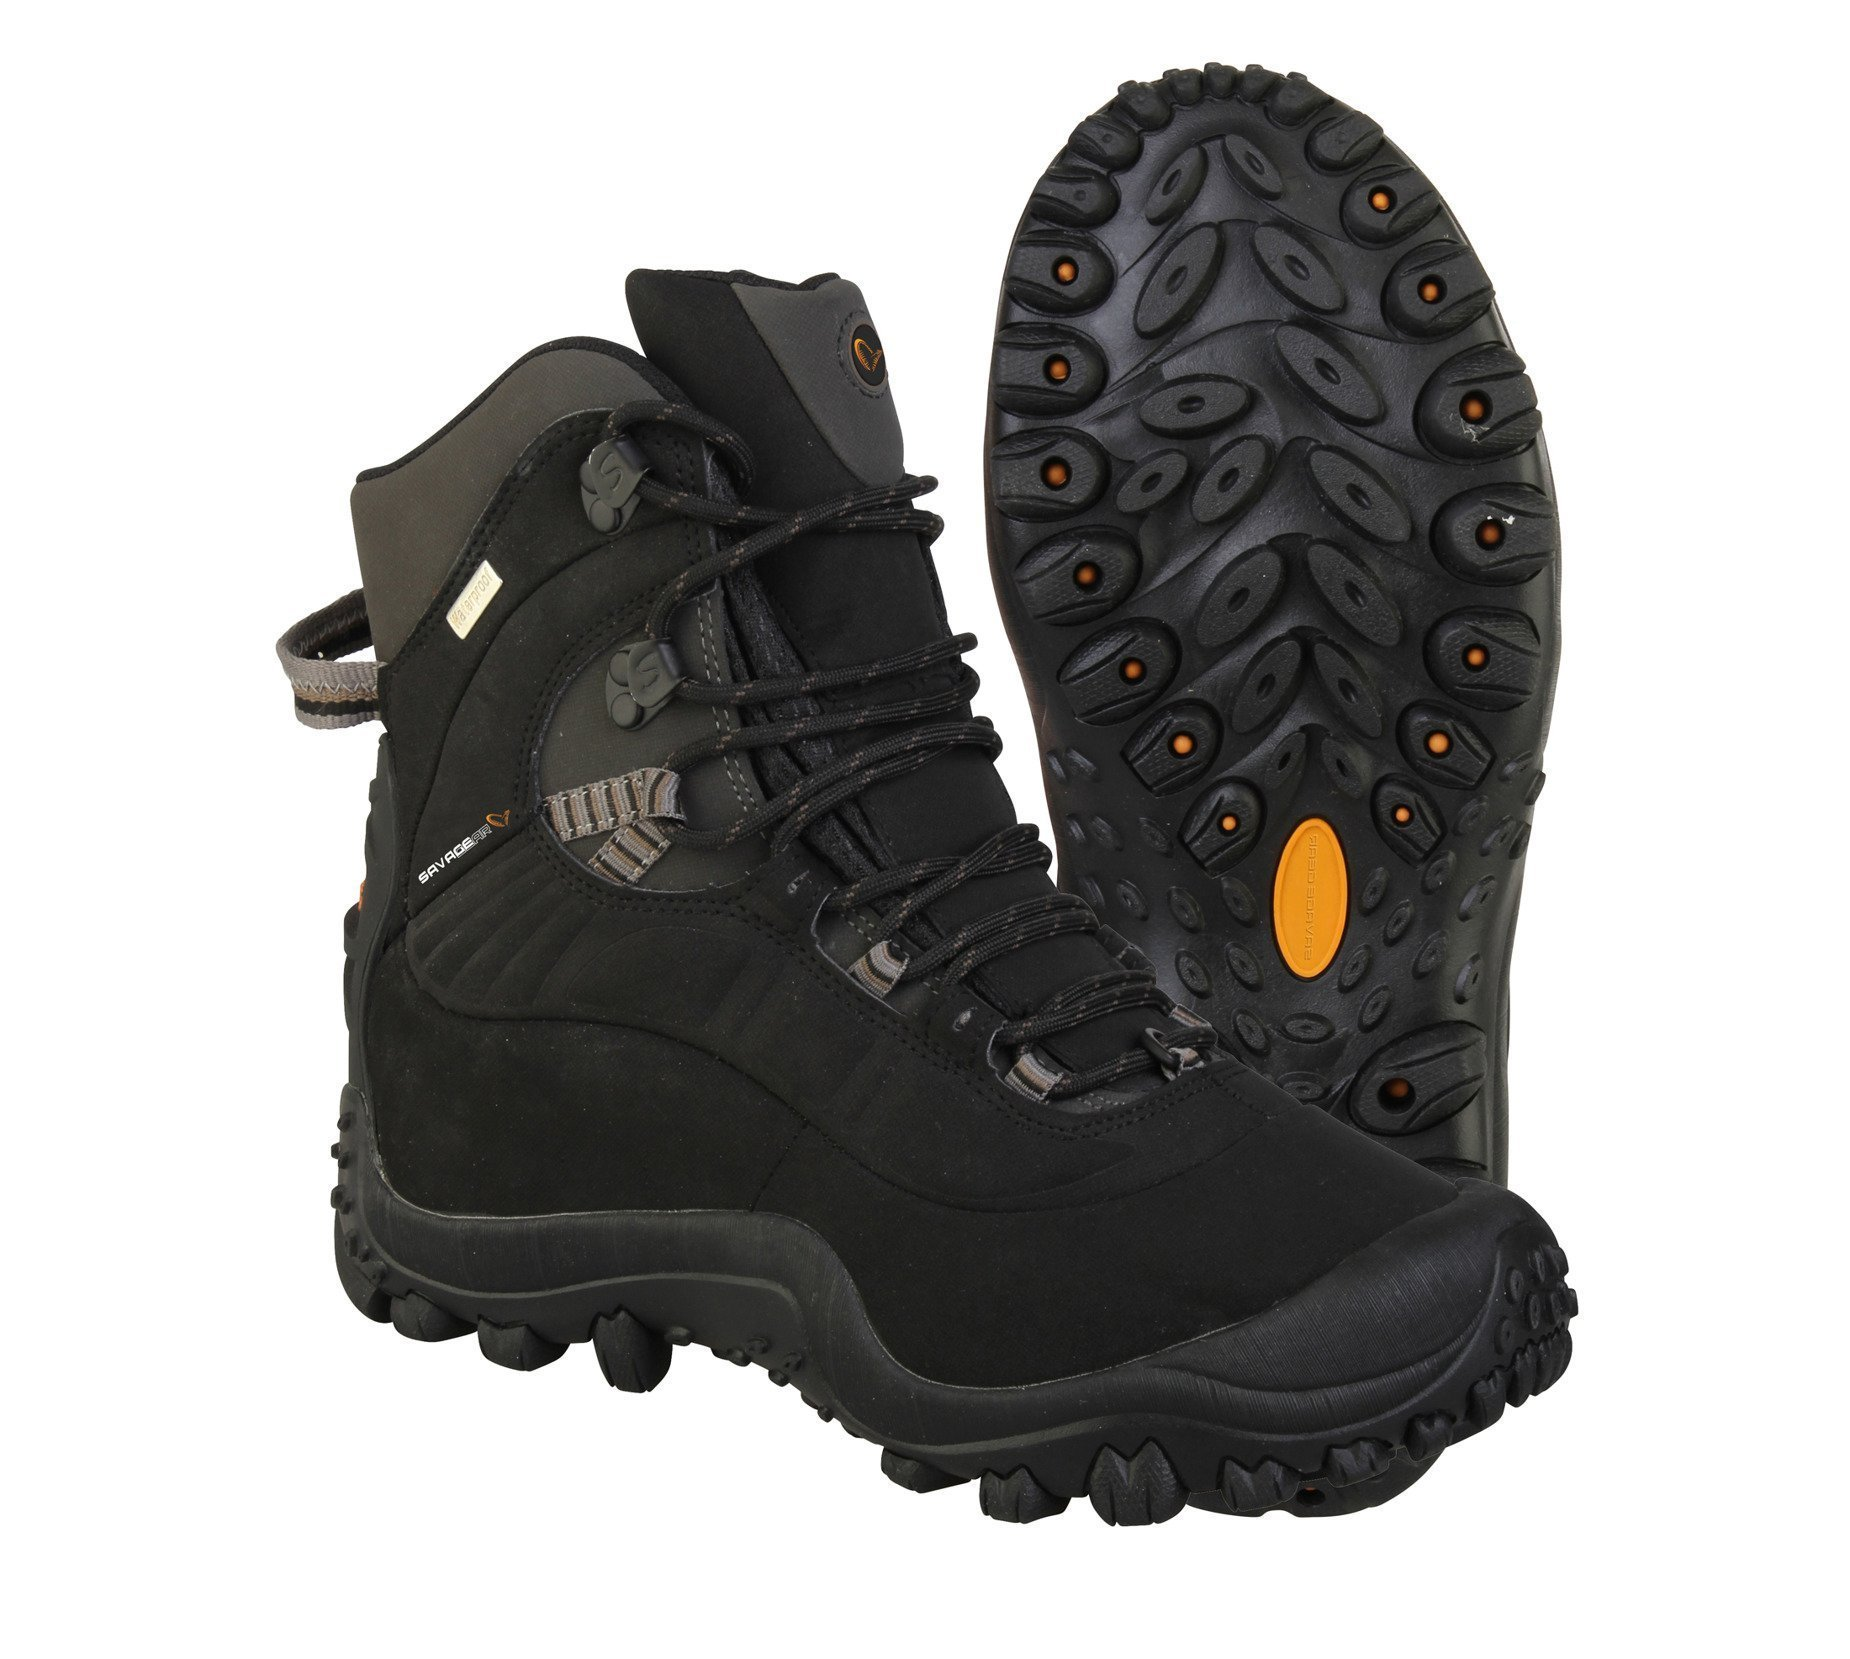 Savage Gear Buty Off-road rozm. 42